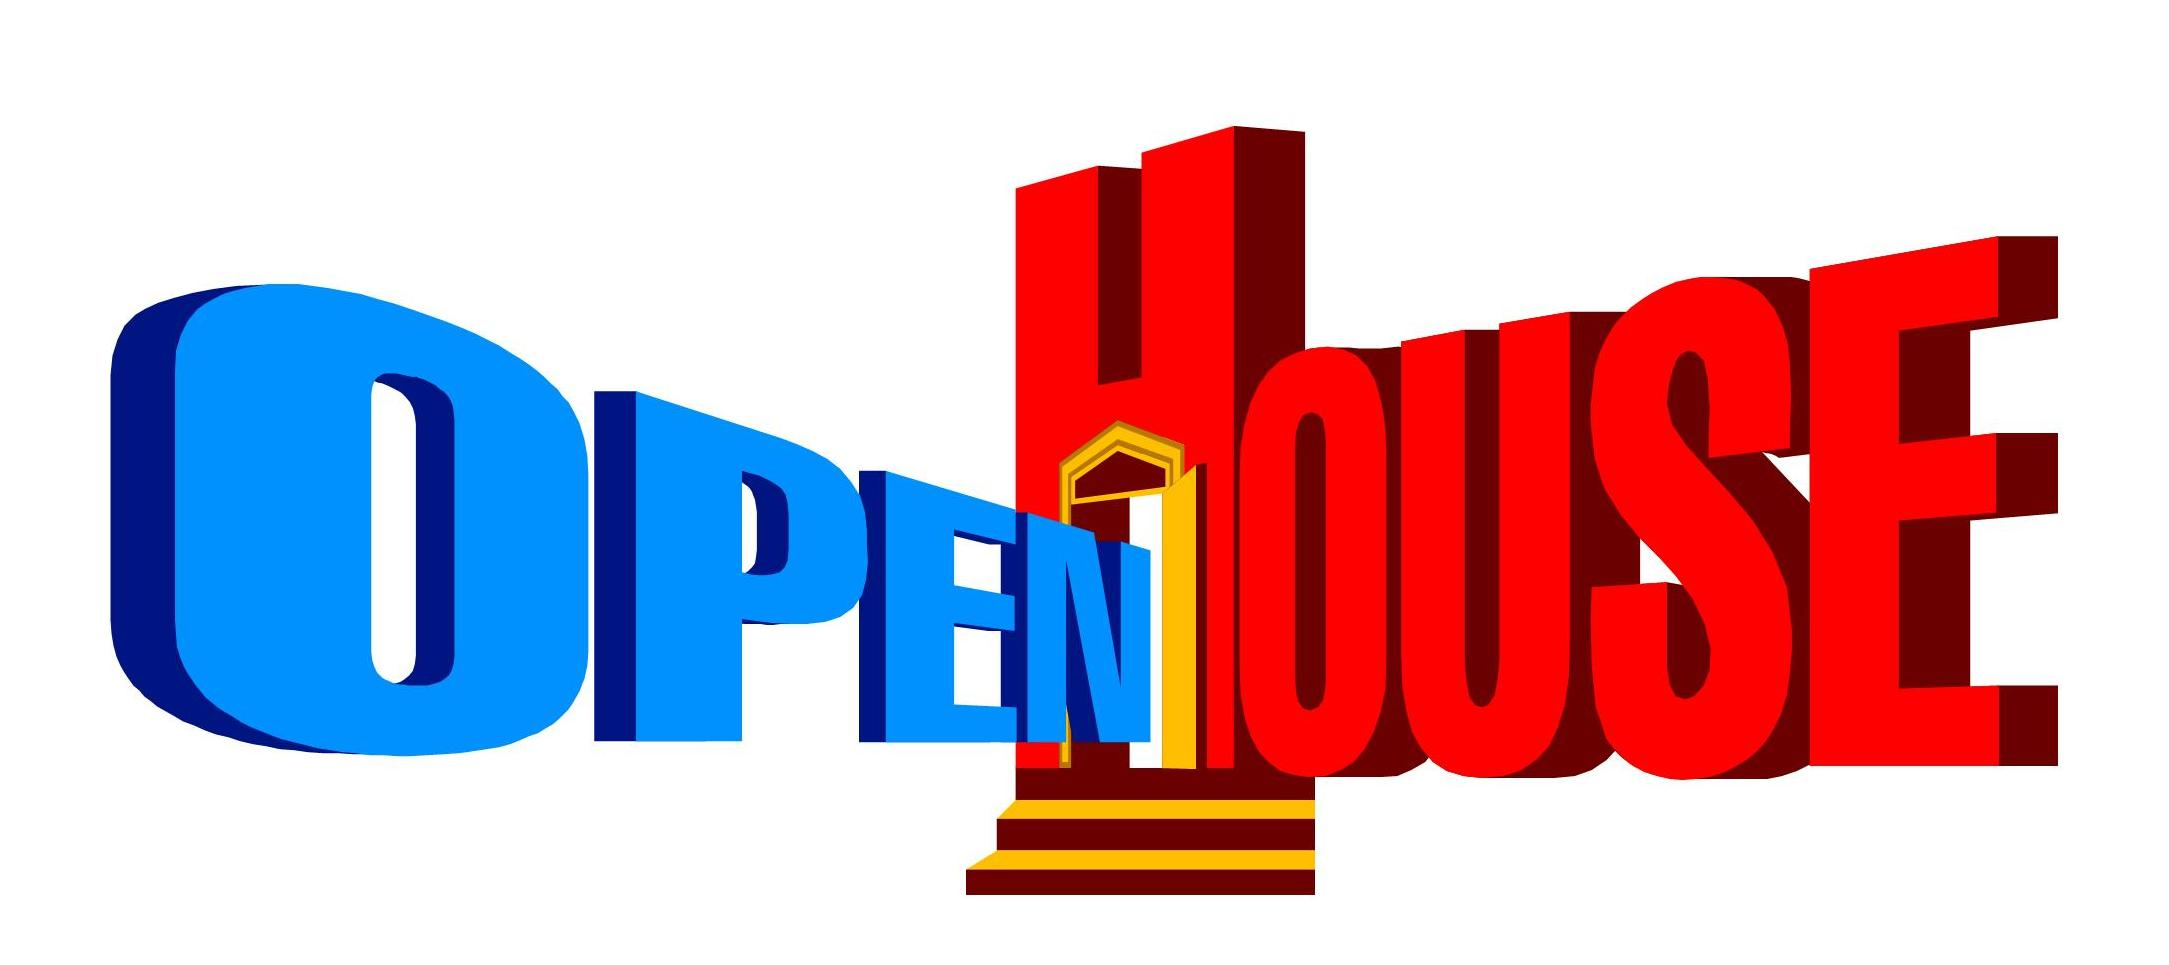 School open house clipart clipart suggest for Open house photos